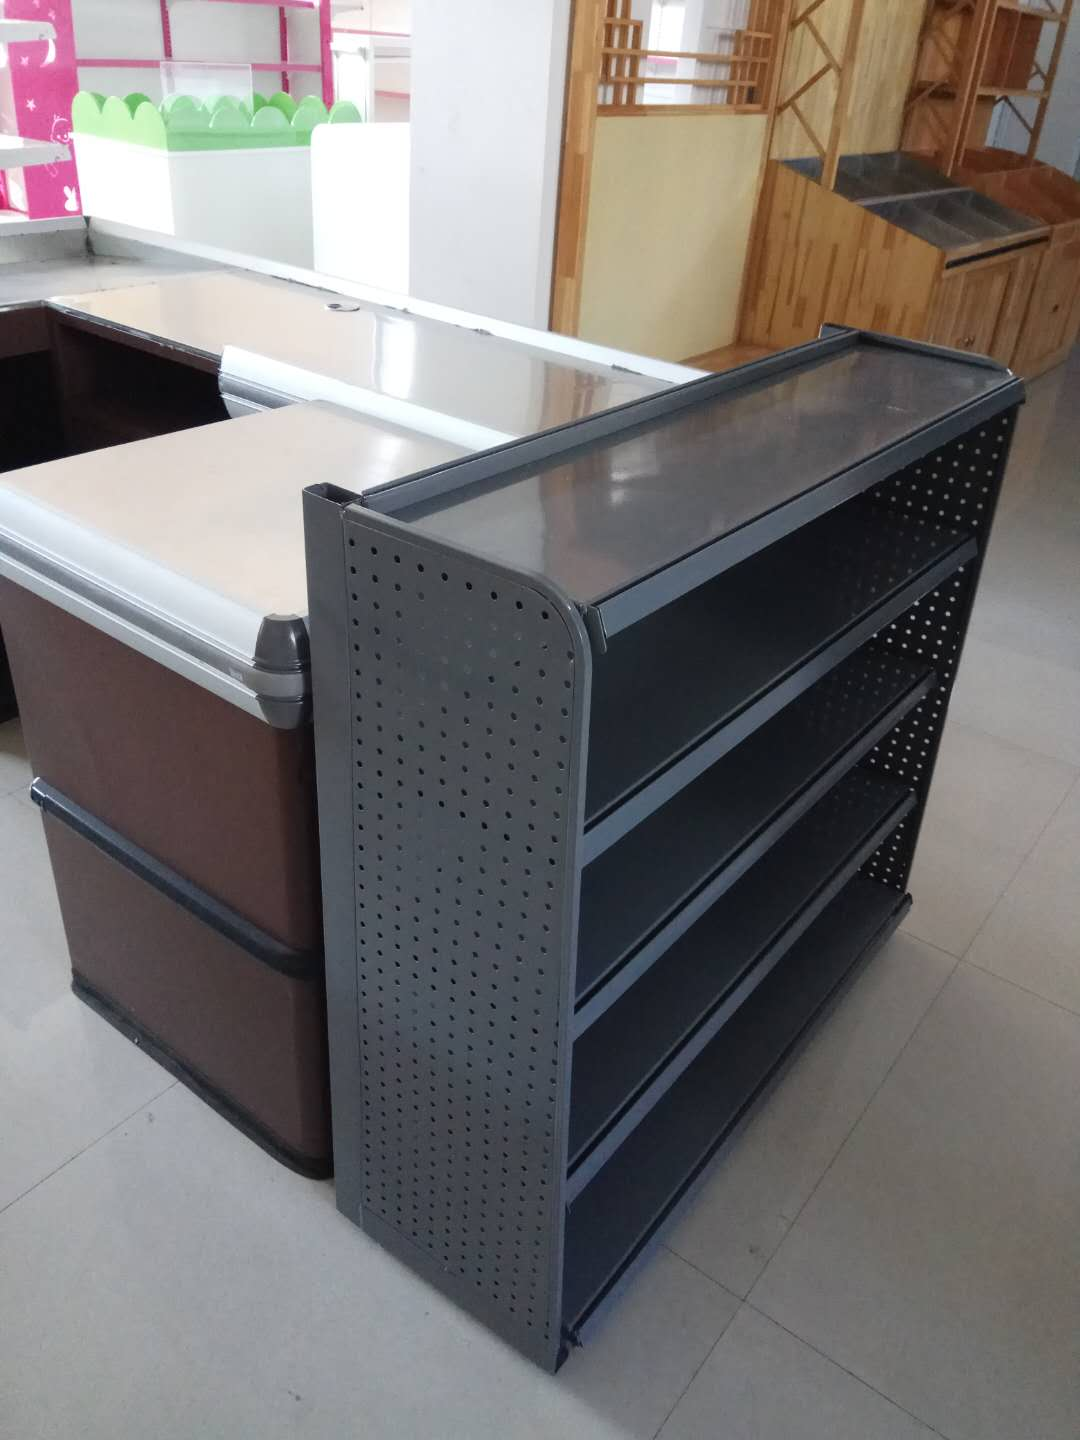 Supermarket display shelves check-out counter combination snacks shelving unit